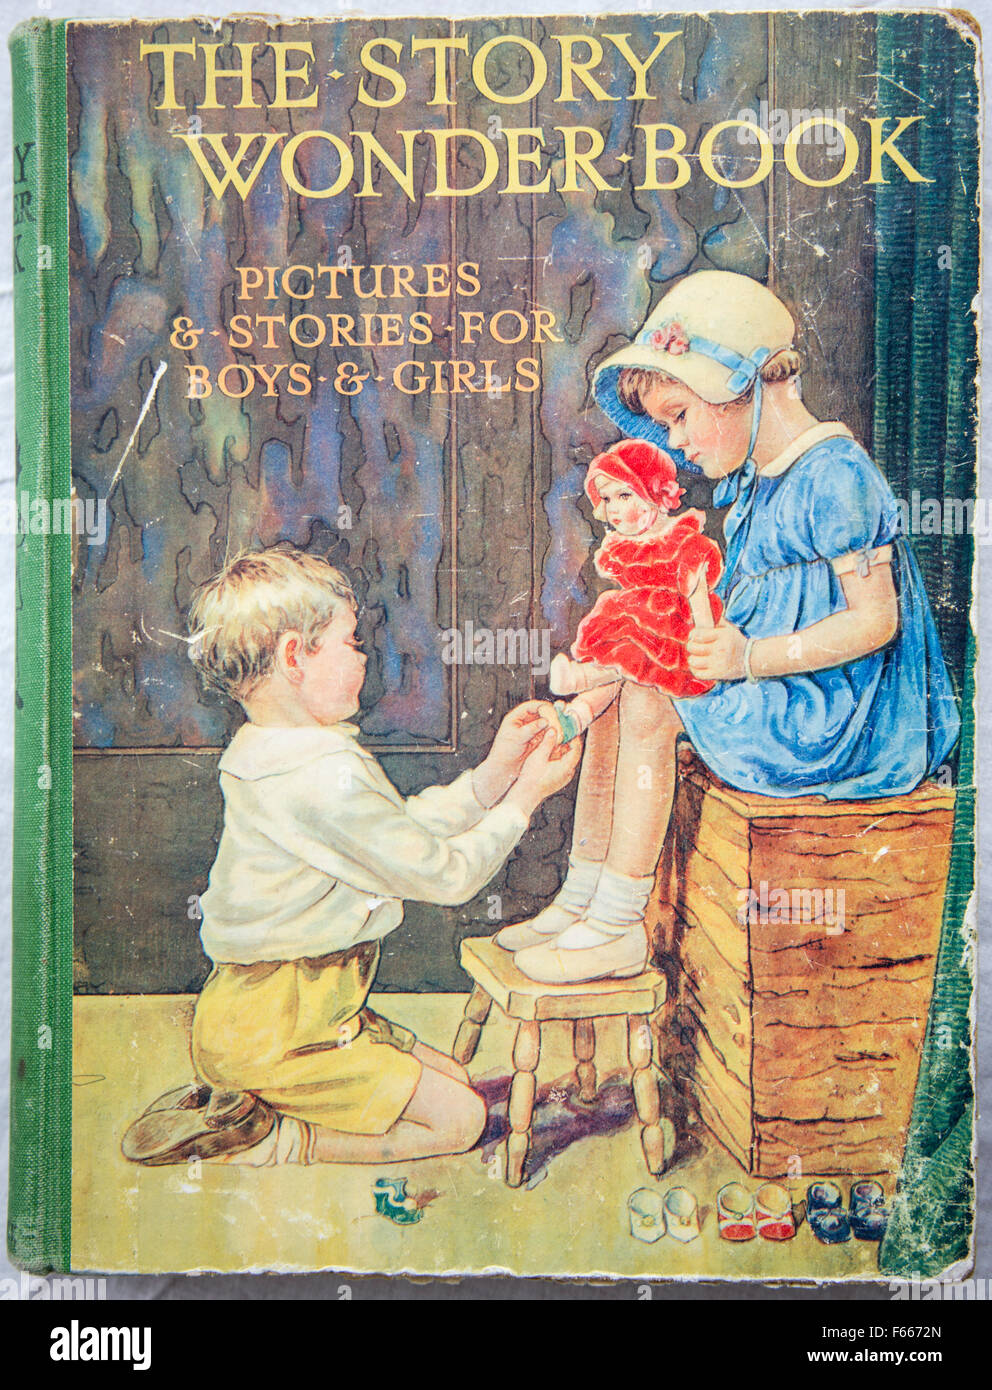 1930s childrens story book, England, UK - Stock Image